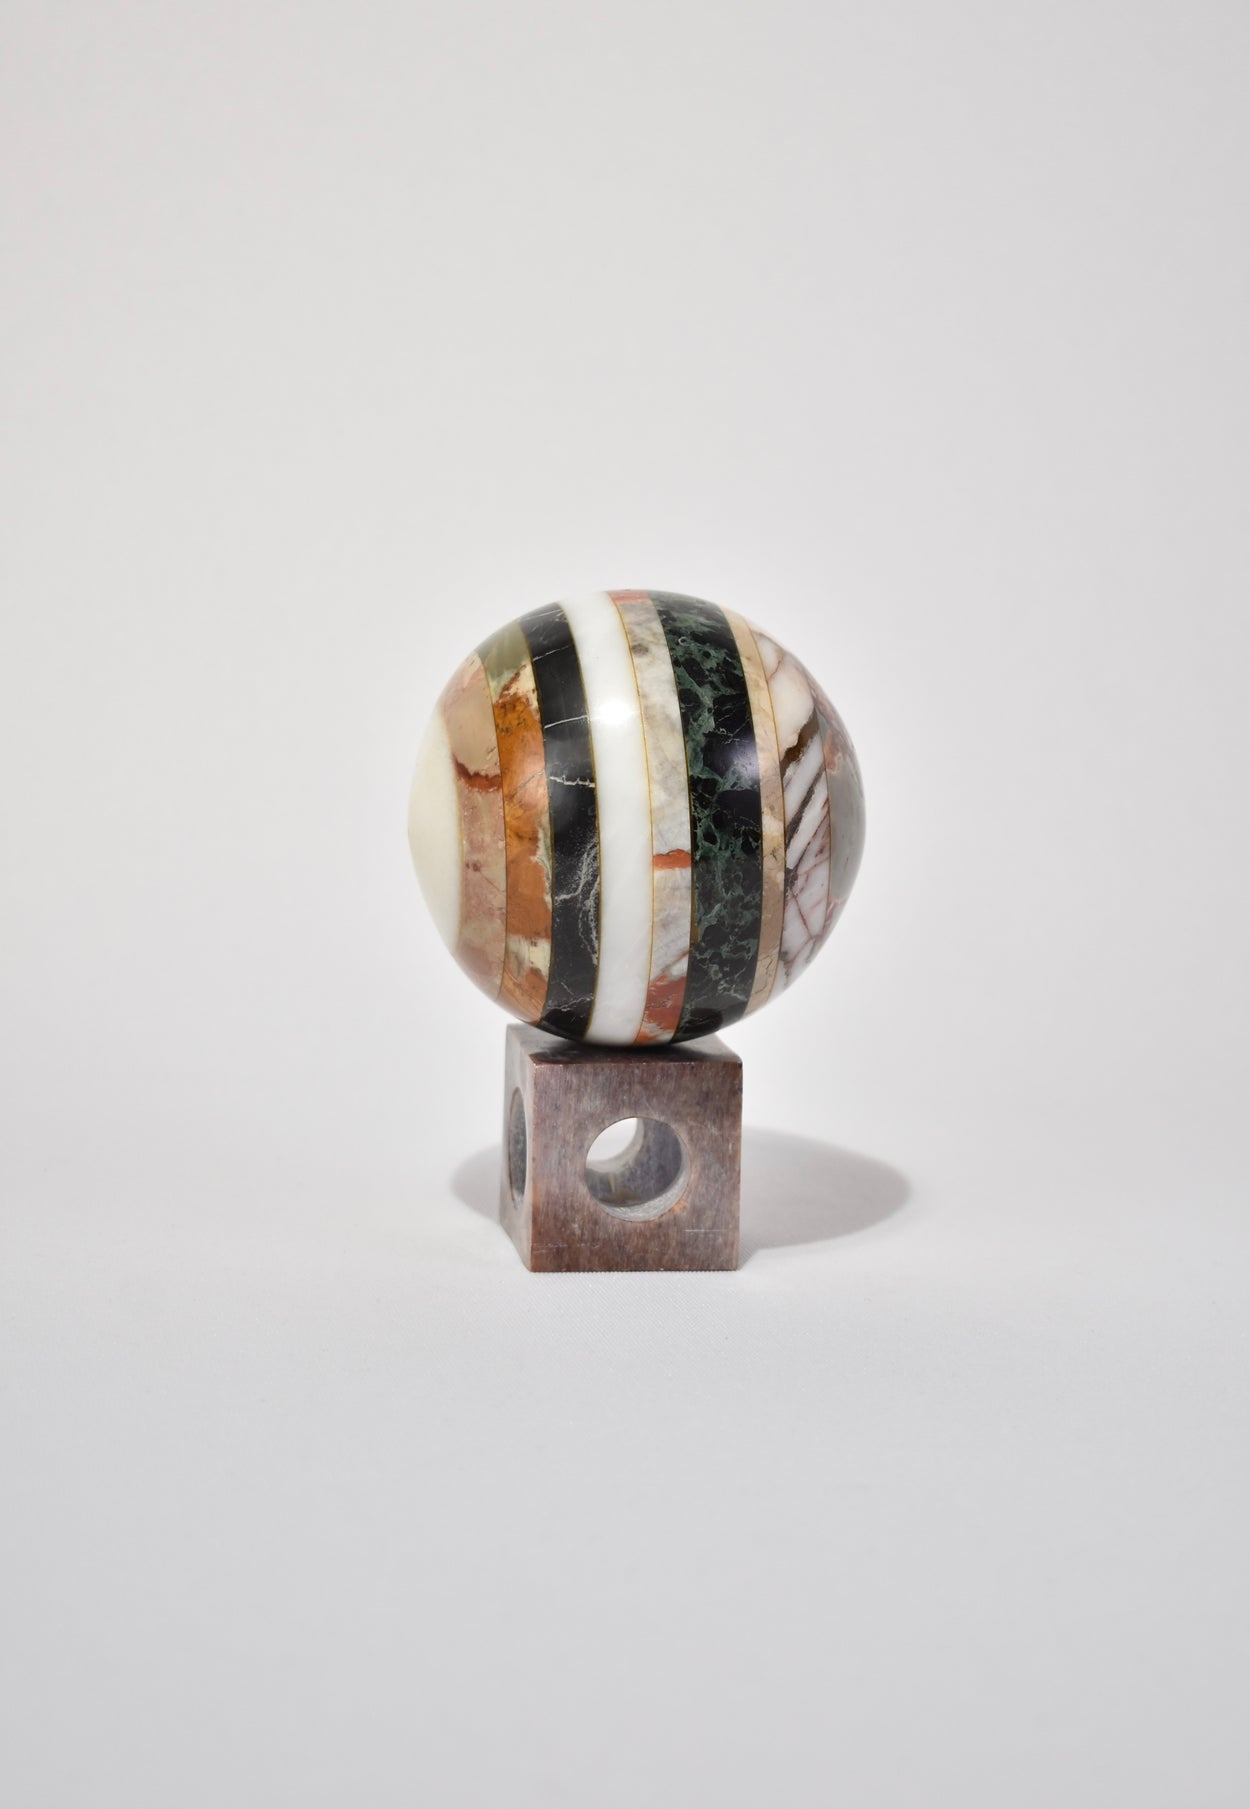 Striped Sphere Sculpture